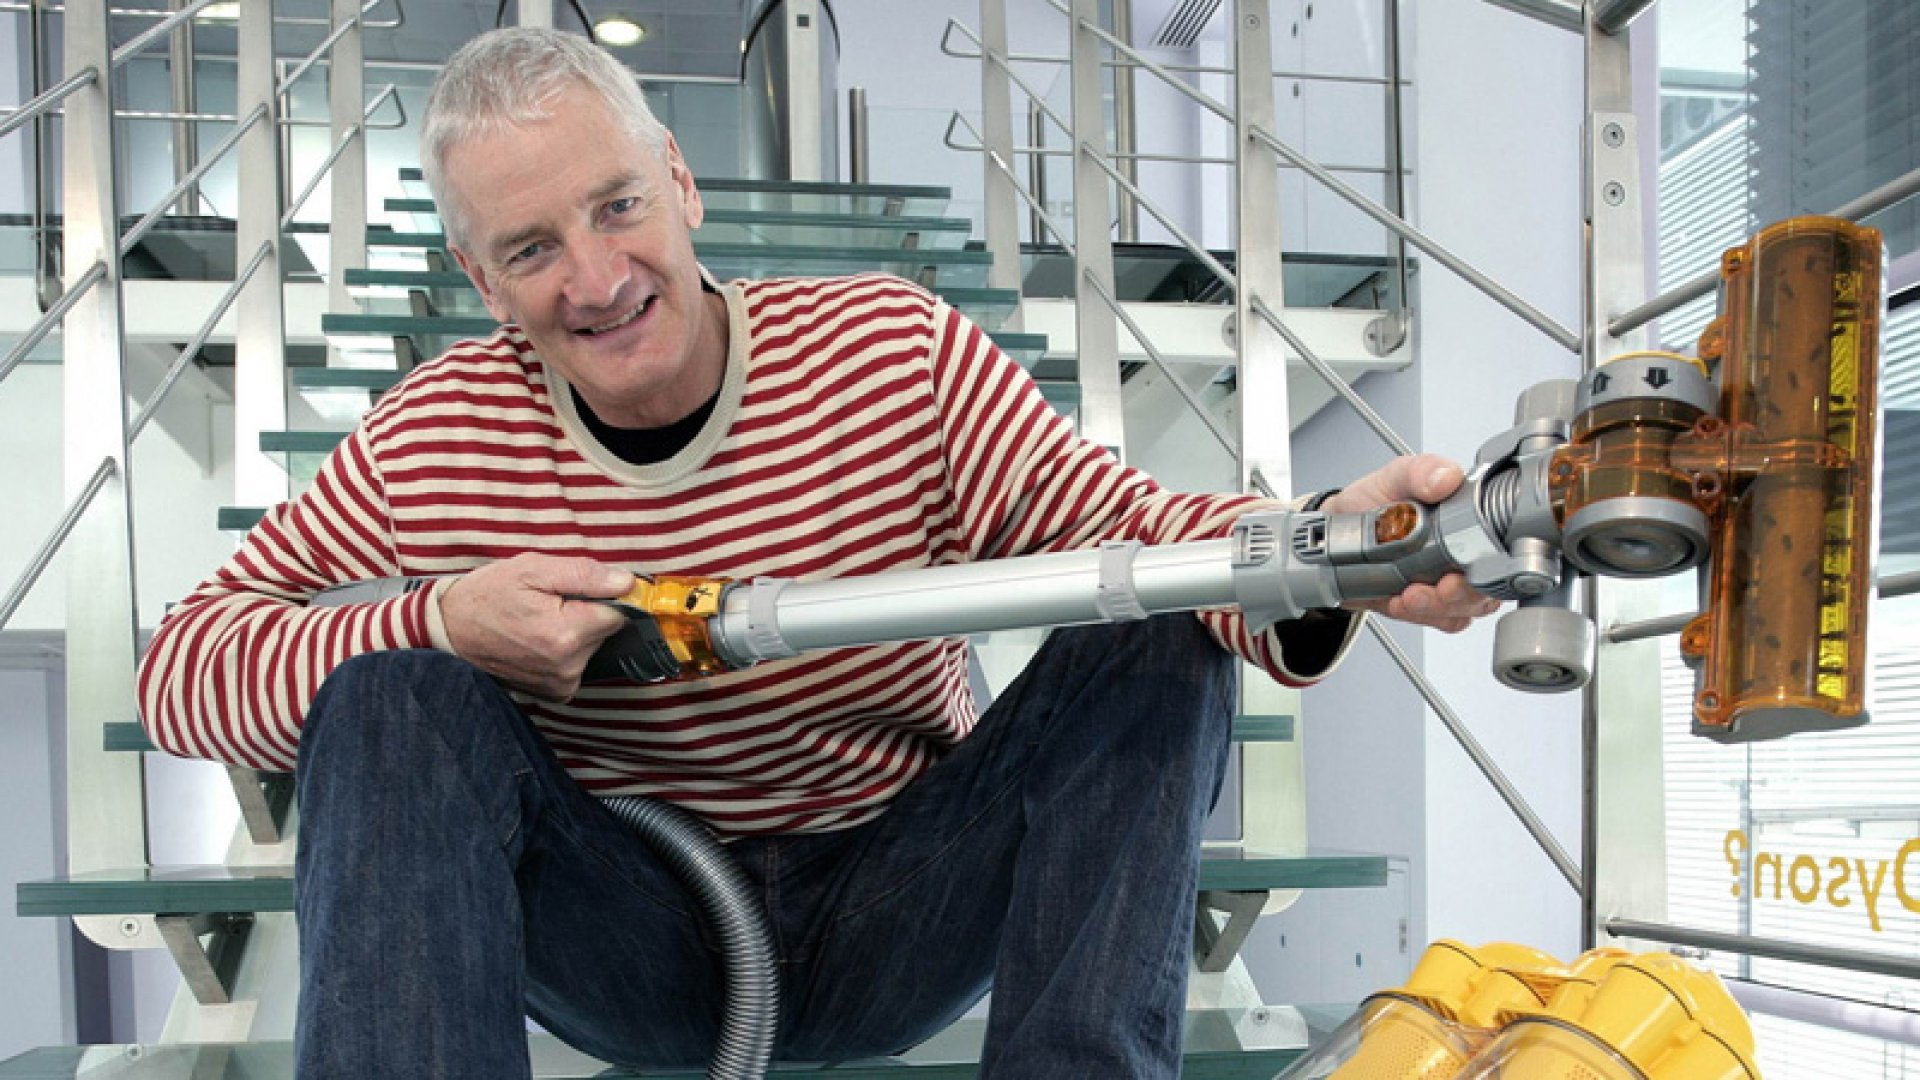 Try, Try Again: Lessons From James Dyson's Invention of the Vacuum